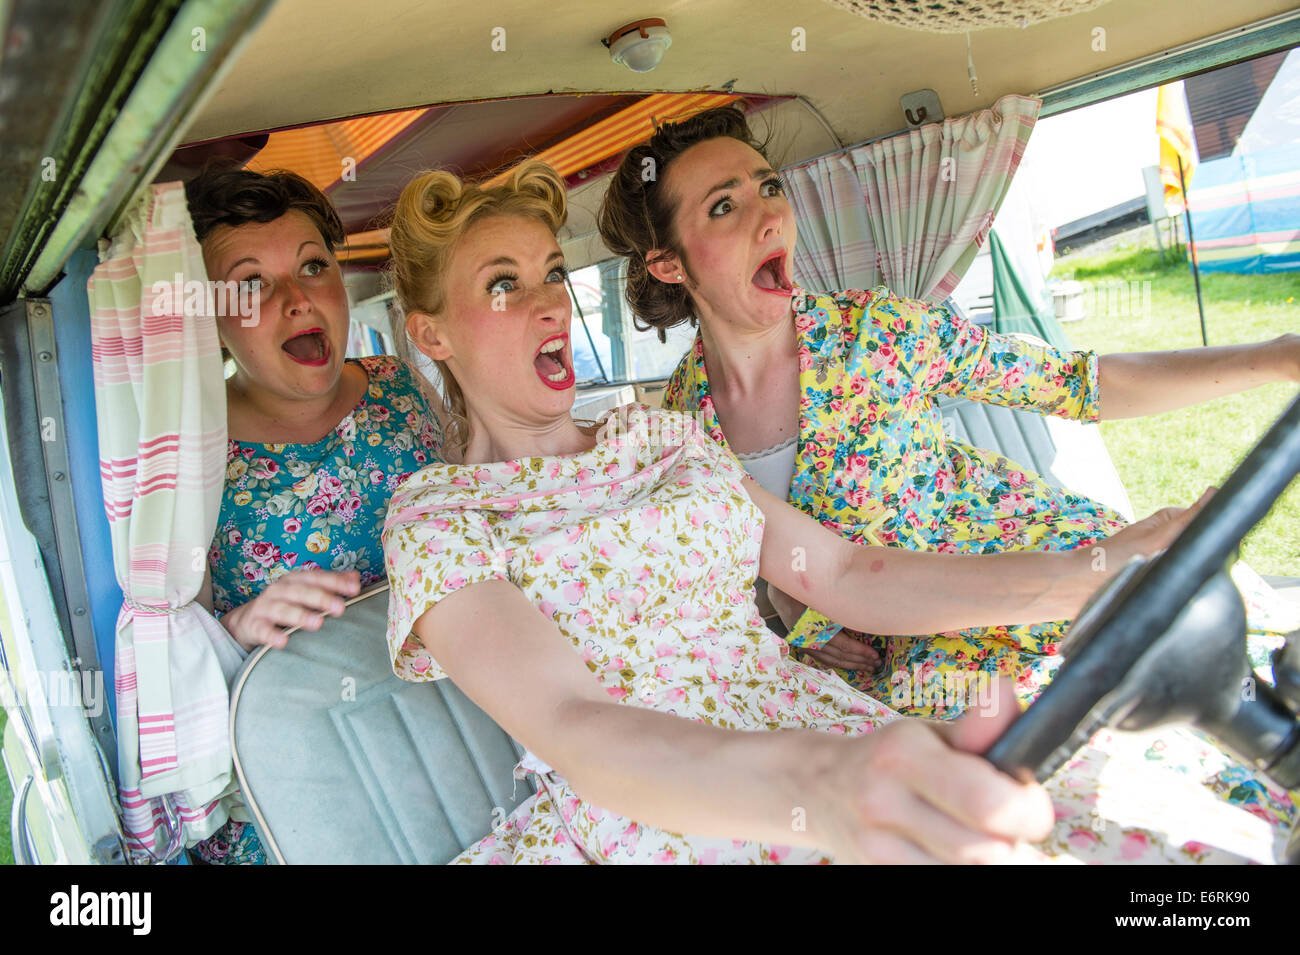 Three women dressed in retro 50's American housewife style summer dress frocks about to crash  in a camper van - Stock Image